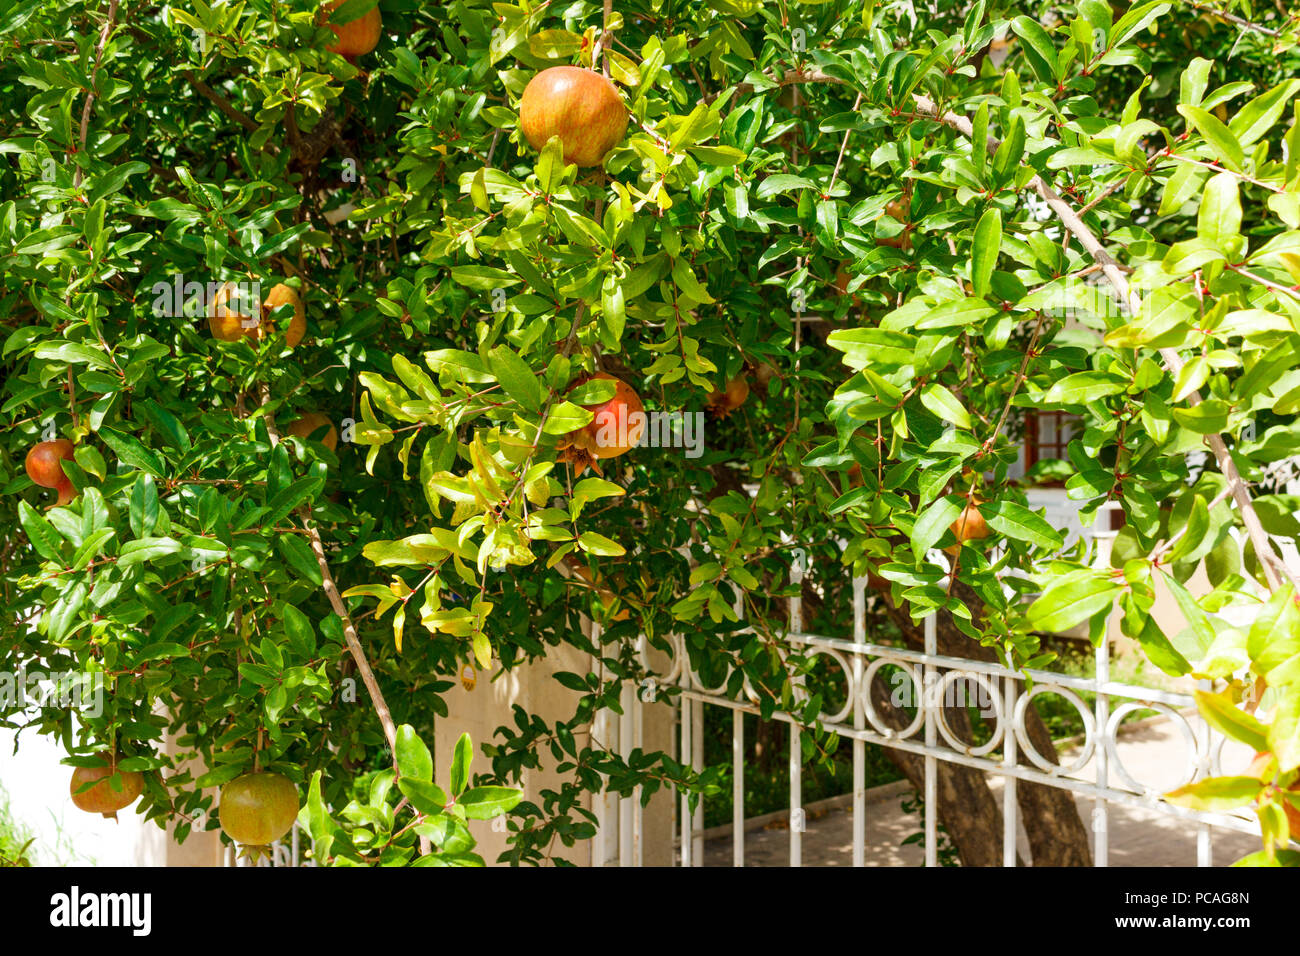 Green young pomegranate growing on the tree brunch in garden. - Stock Image